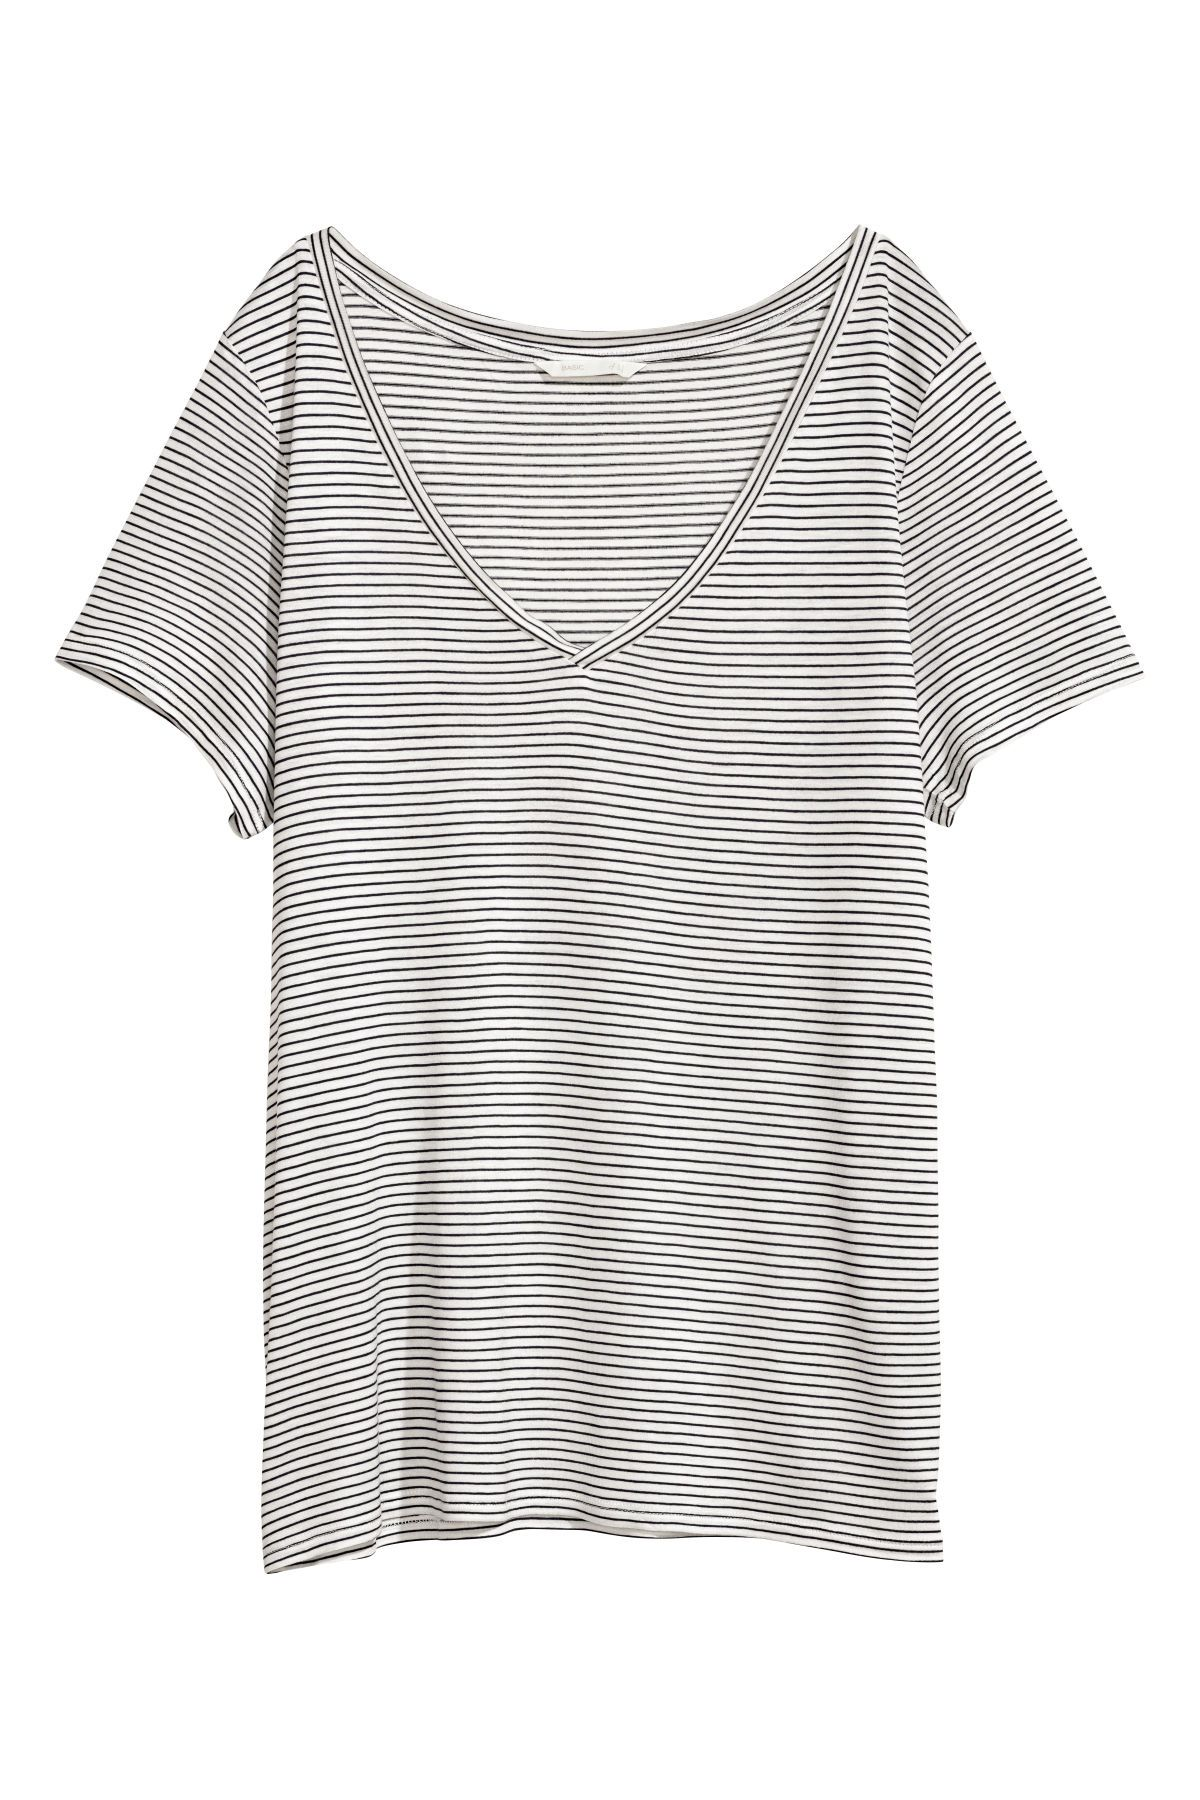 b76c2dc818 White Blue striped. Soft viscose jersey T-shirt in a slightly wider style